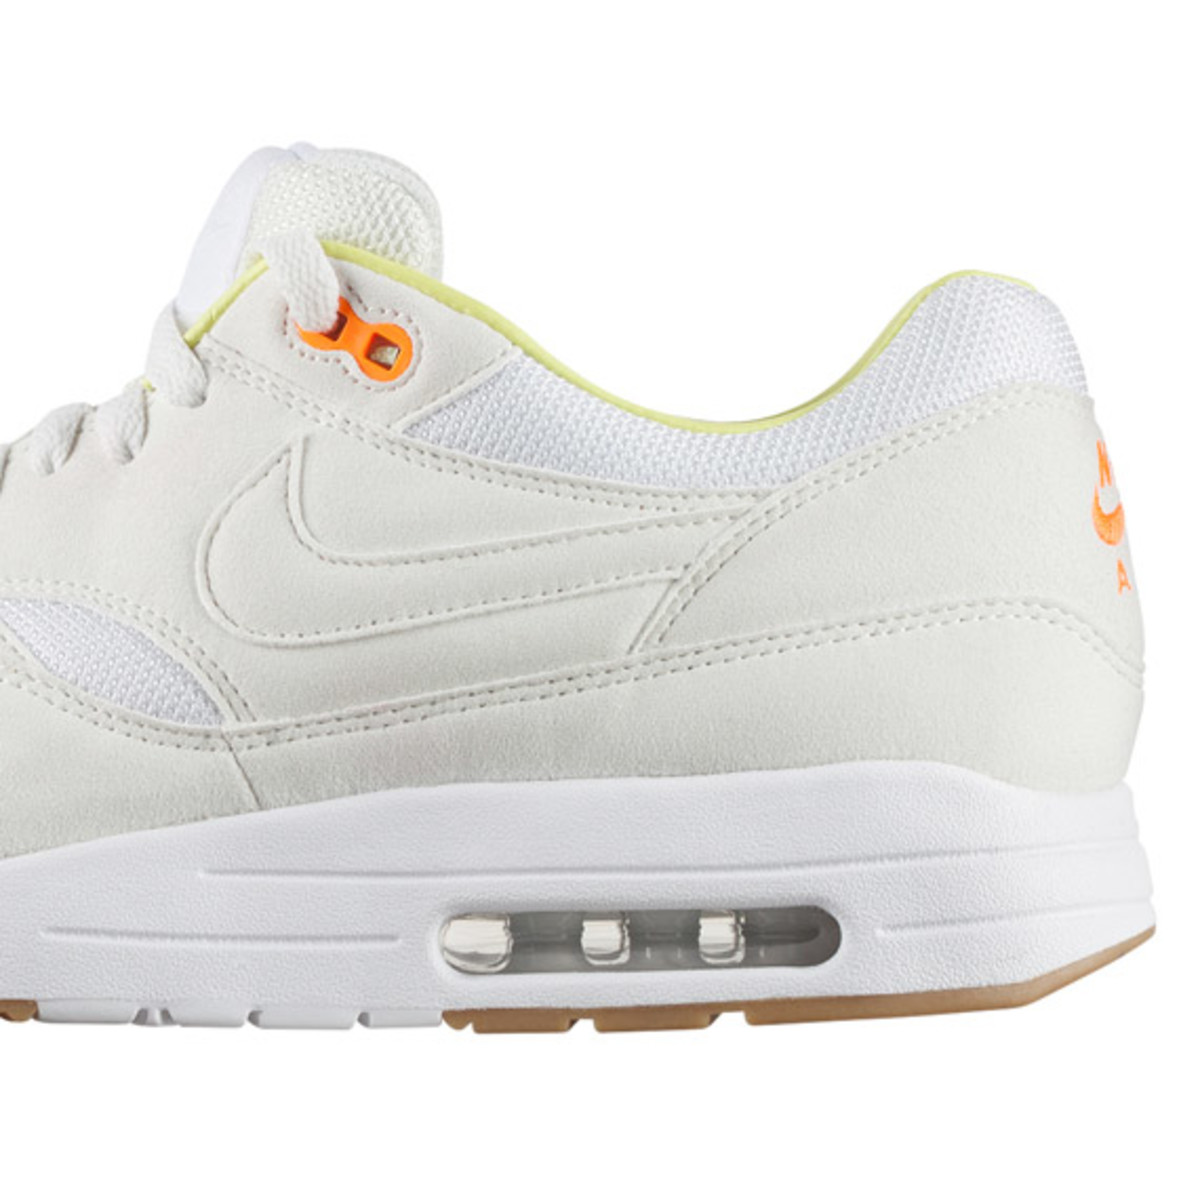 a-p-c-nike-air-max-1-fall-winter-2013-collection-04